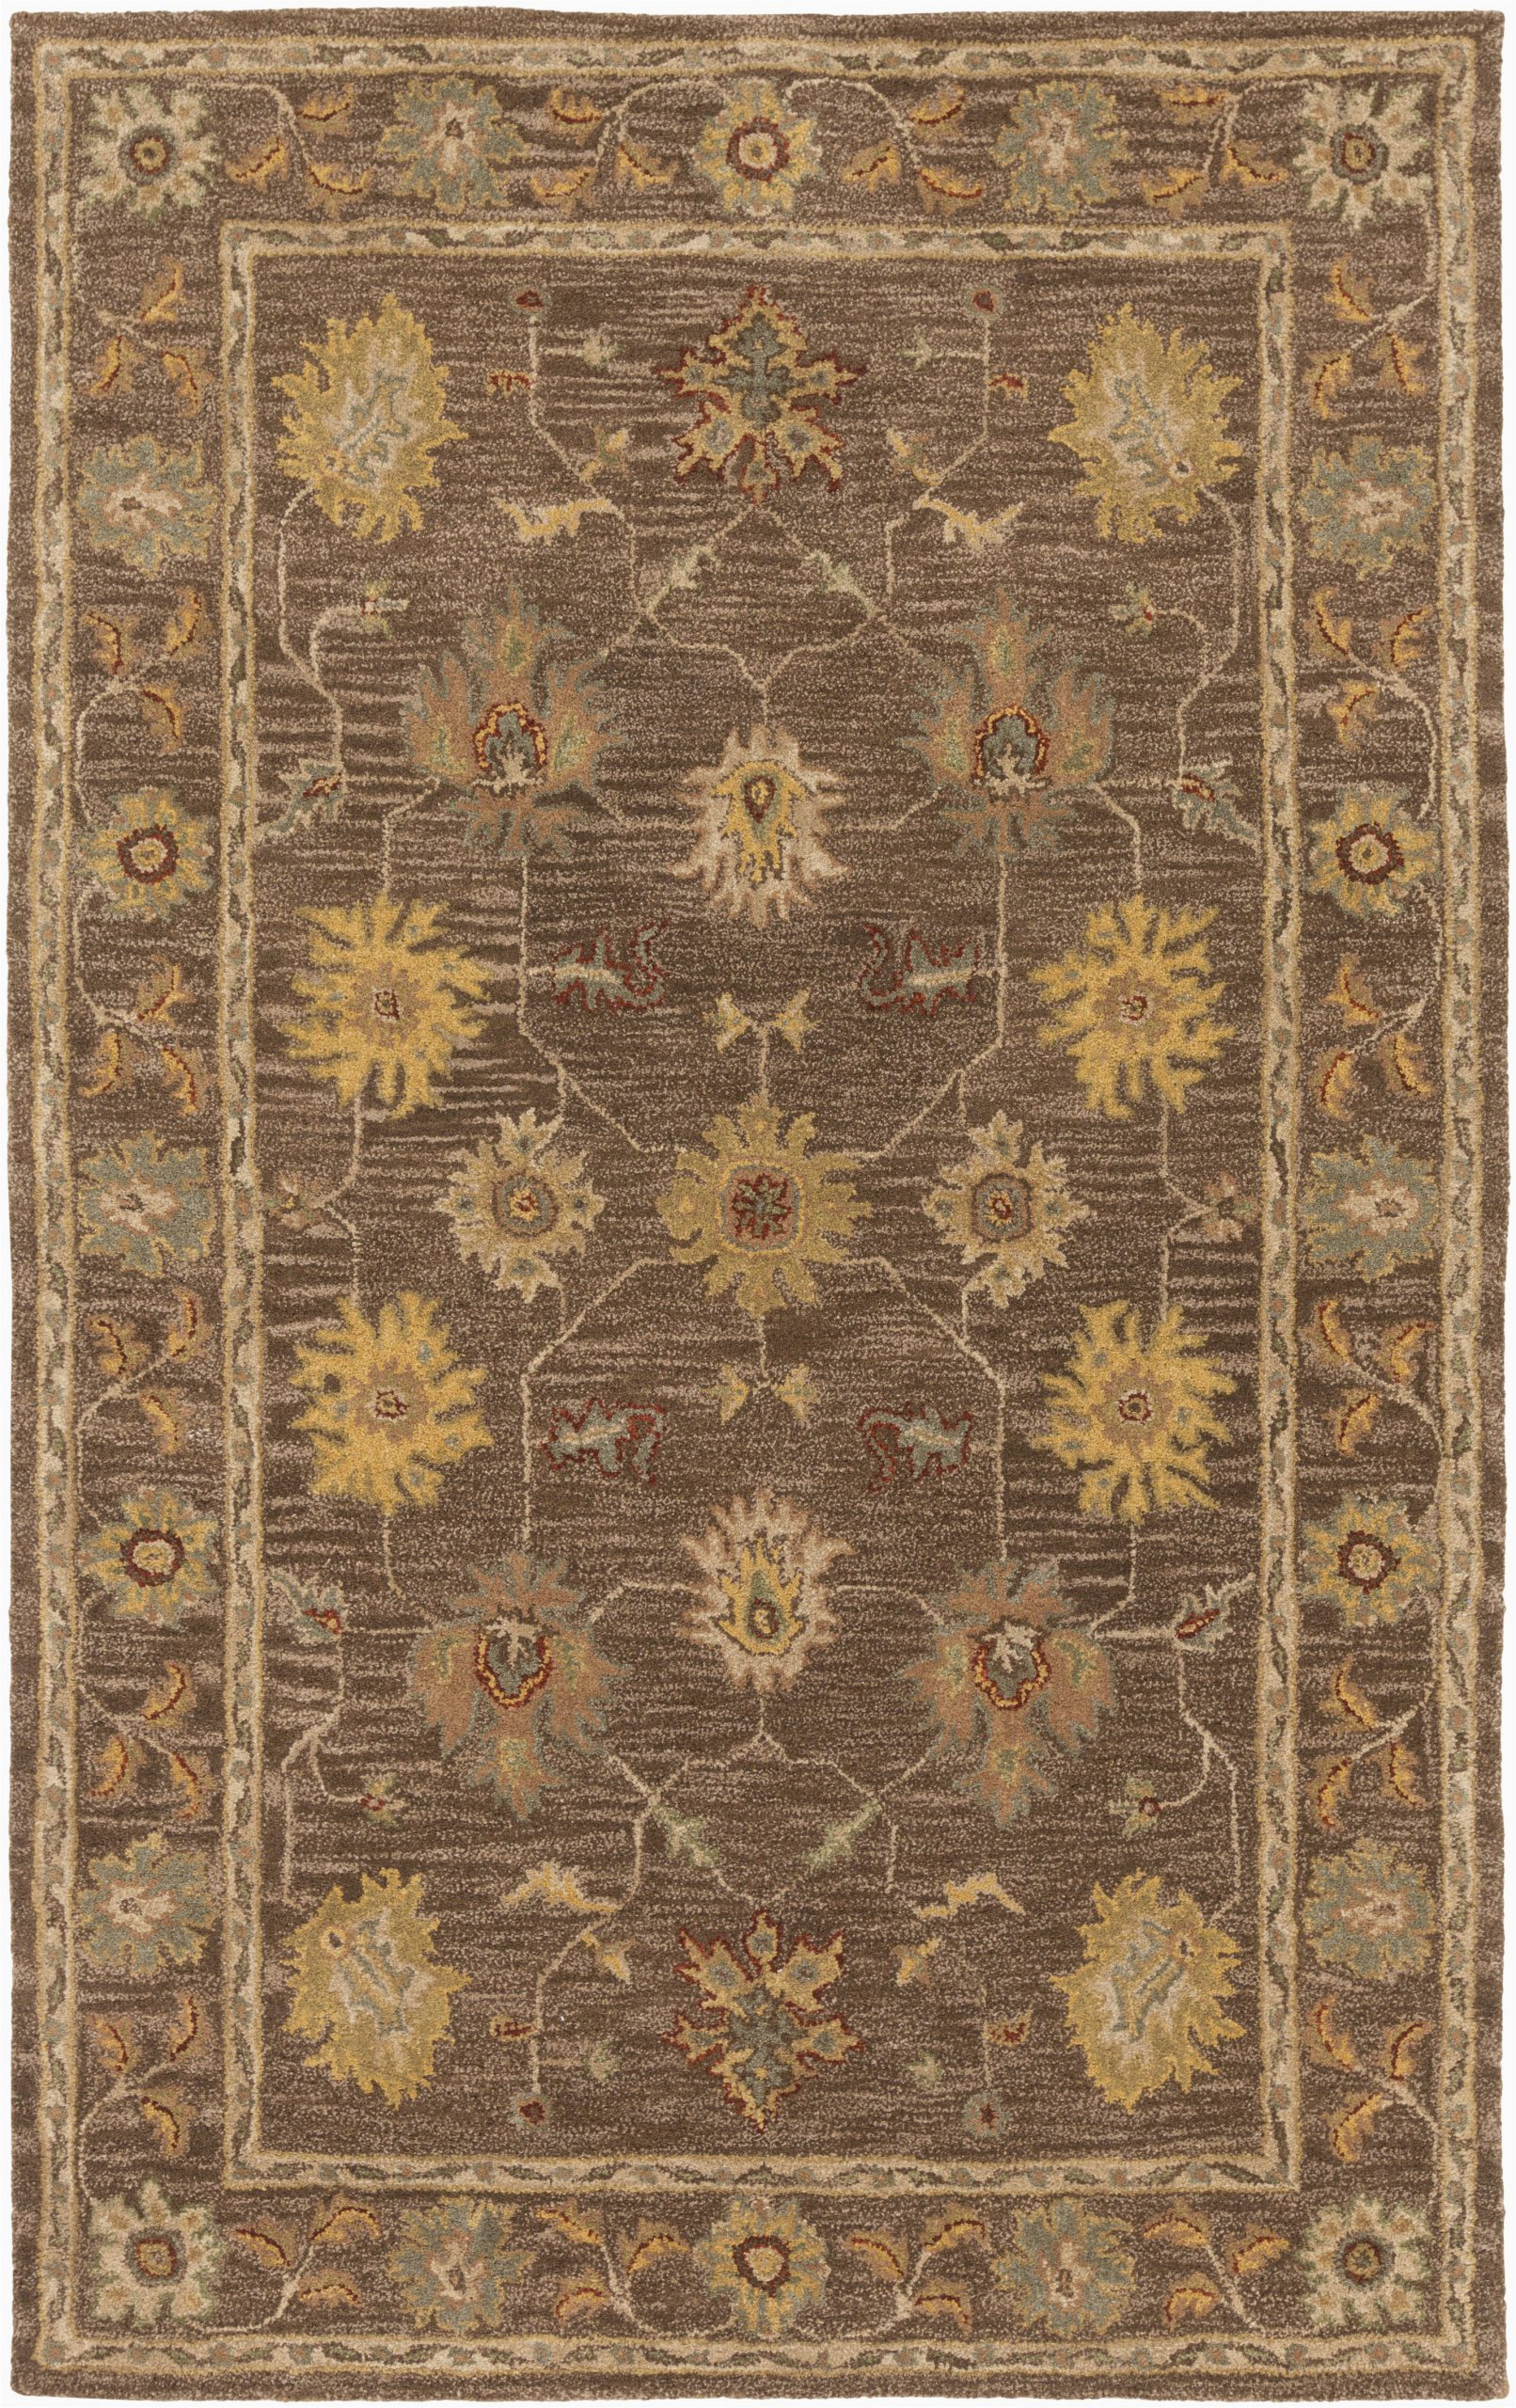 plemmons oriental handmade tufted wool dark browncamel area rug